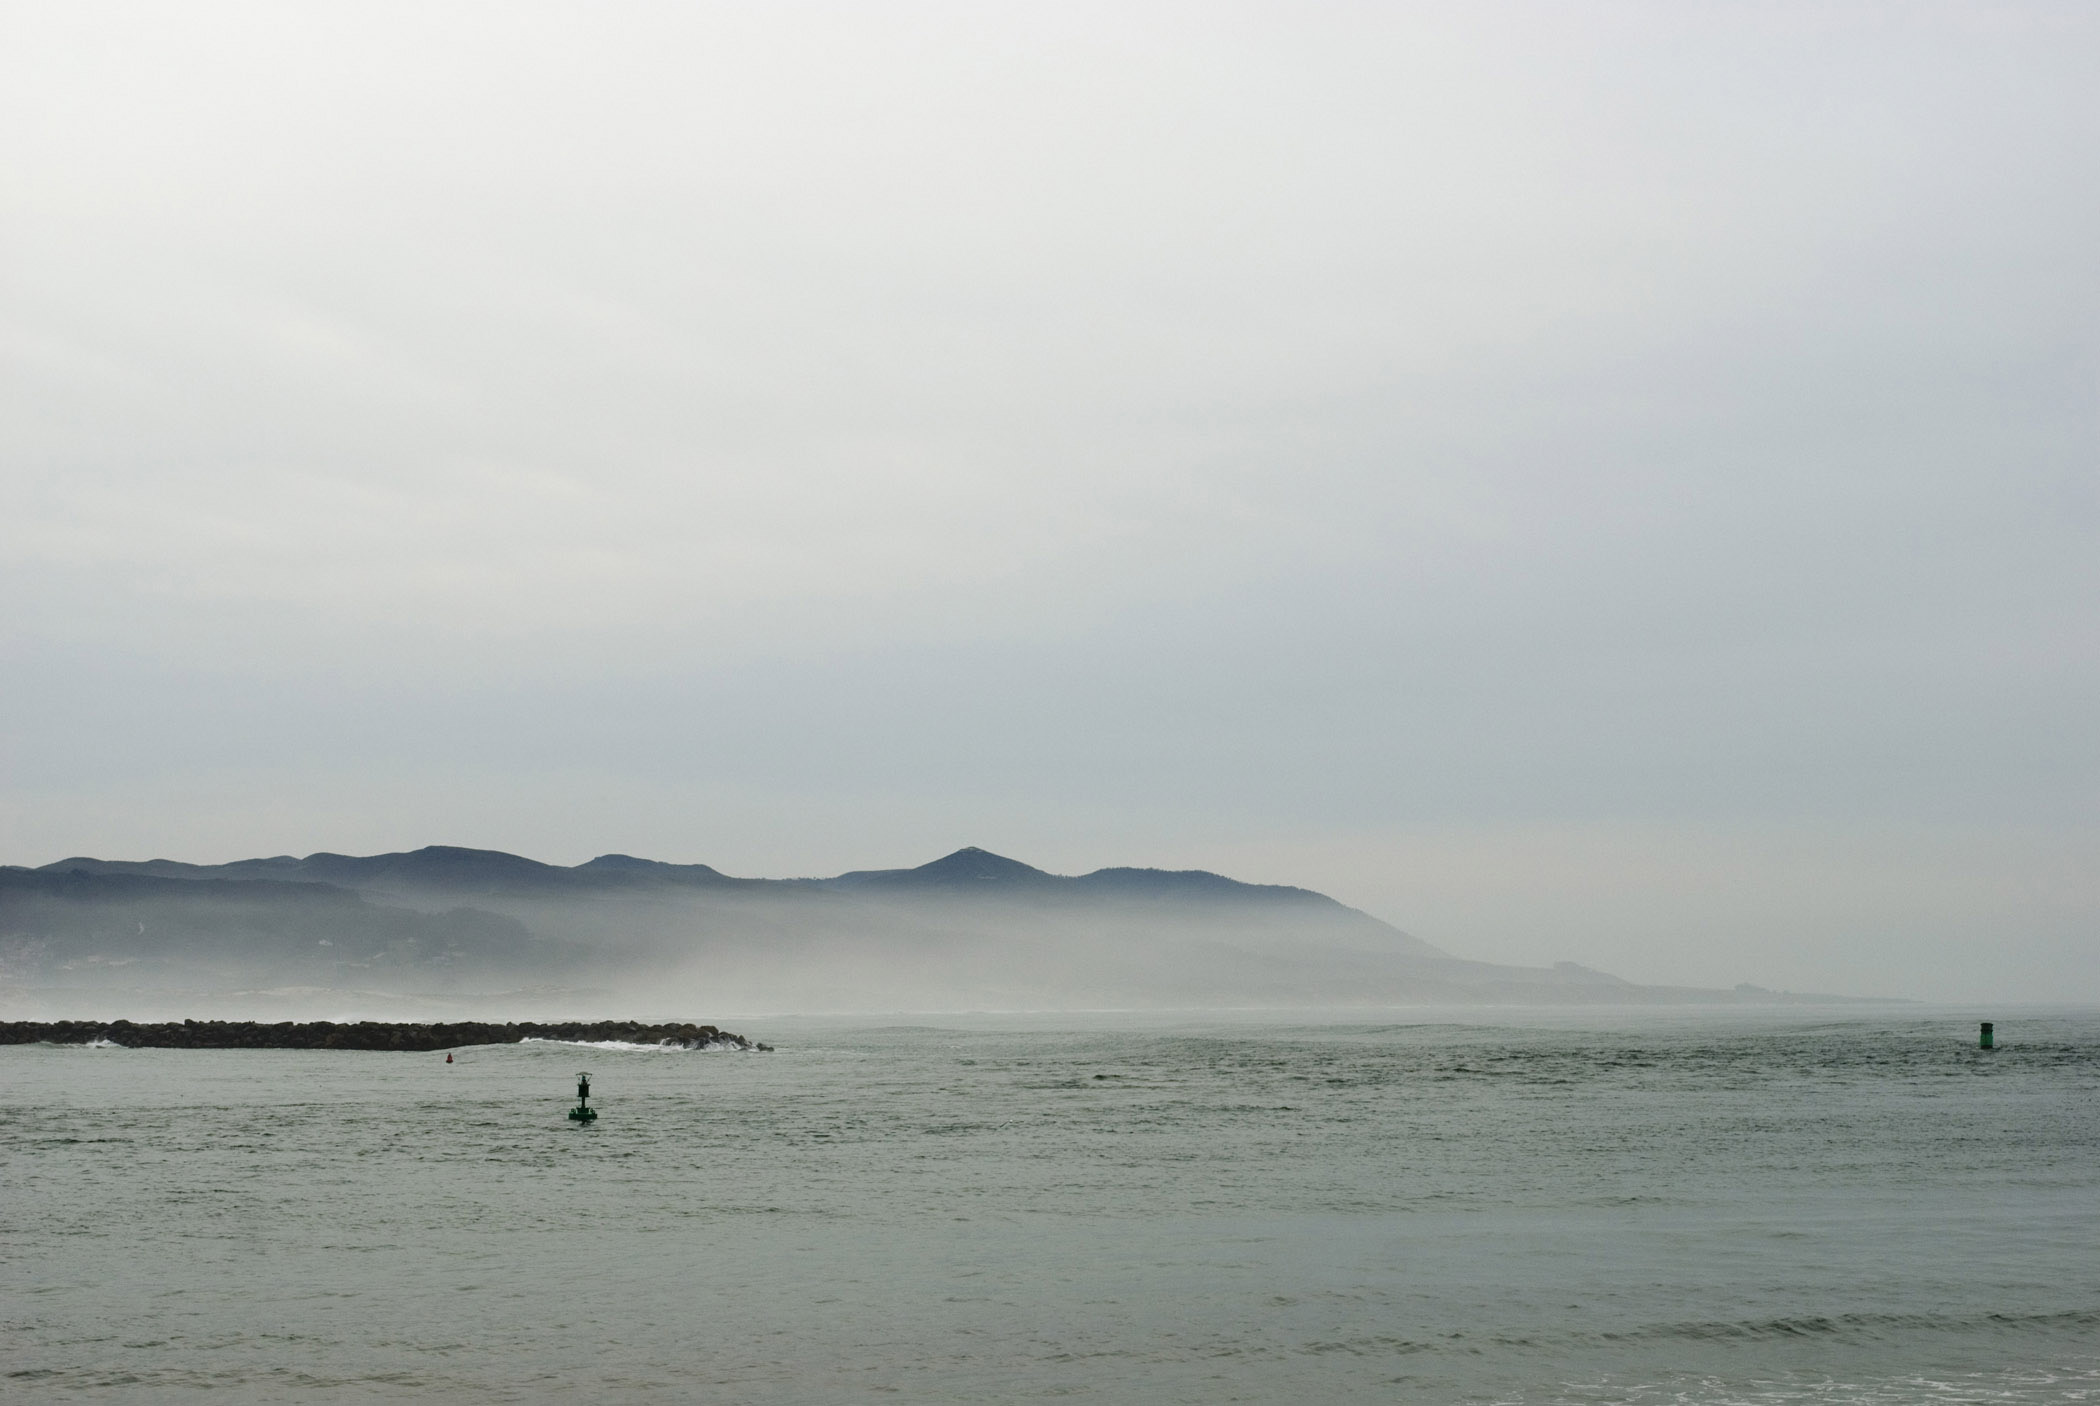 Morro Bay coastline in California with a calm flat ocean and light sea mist